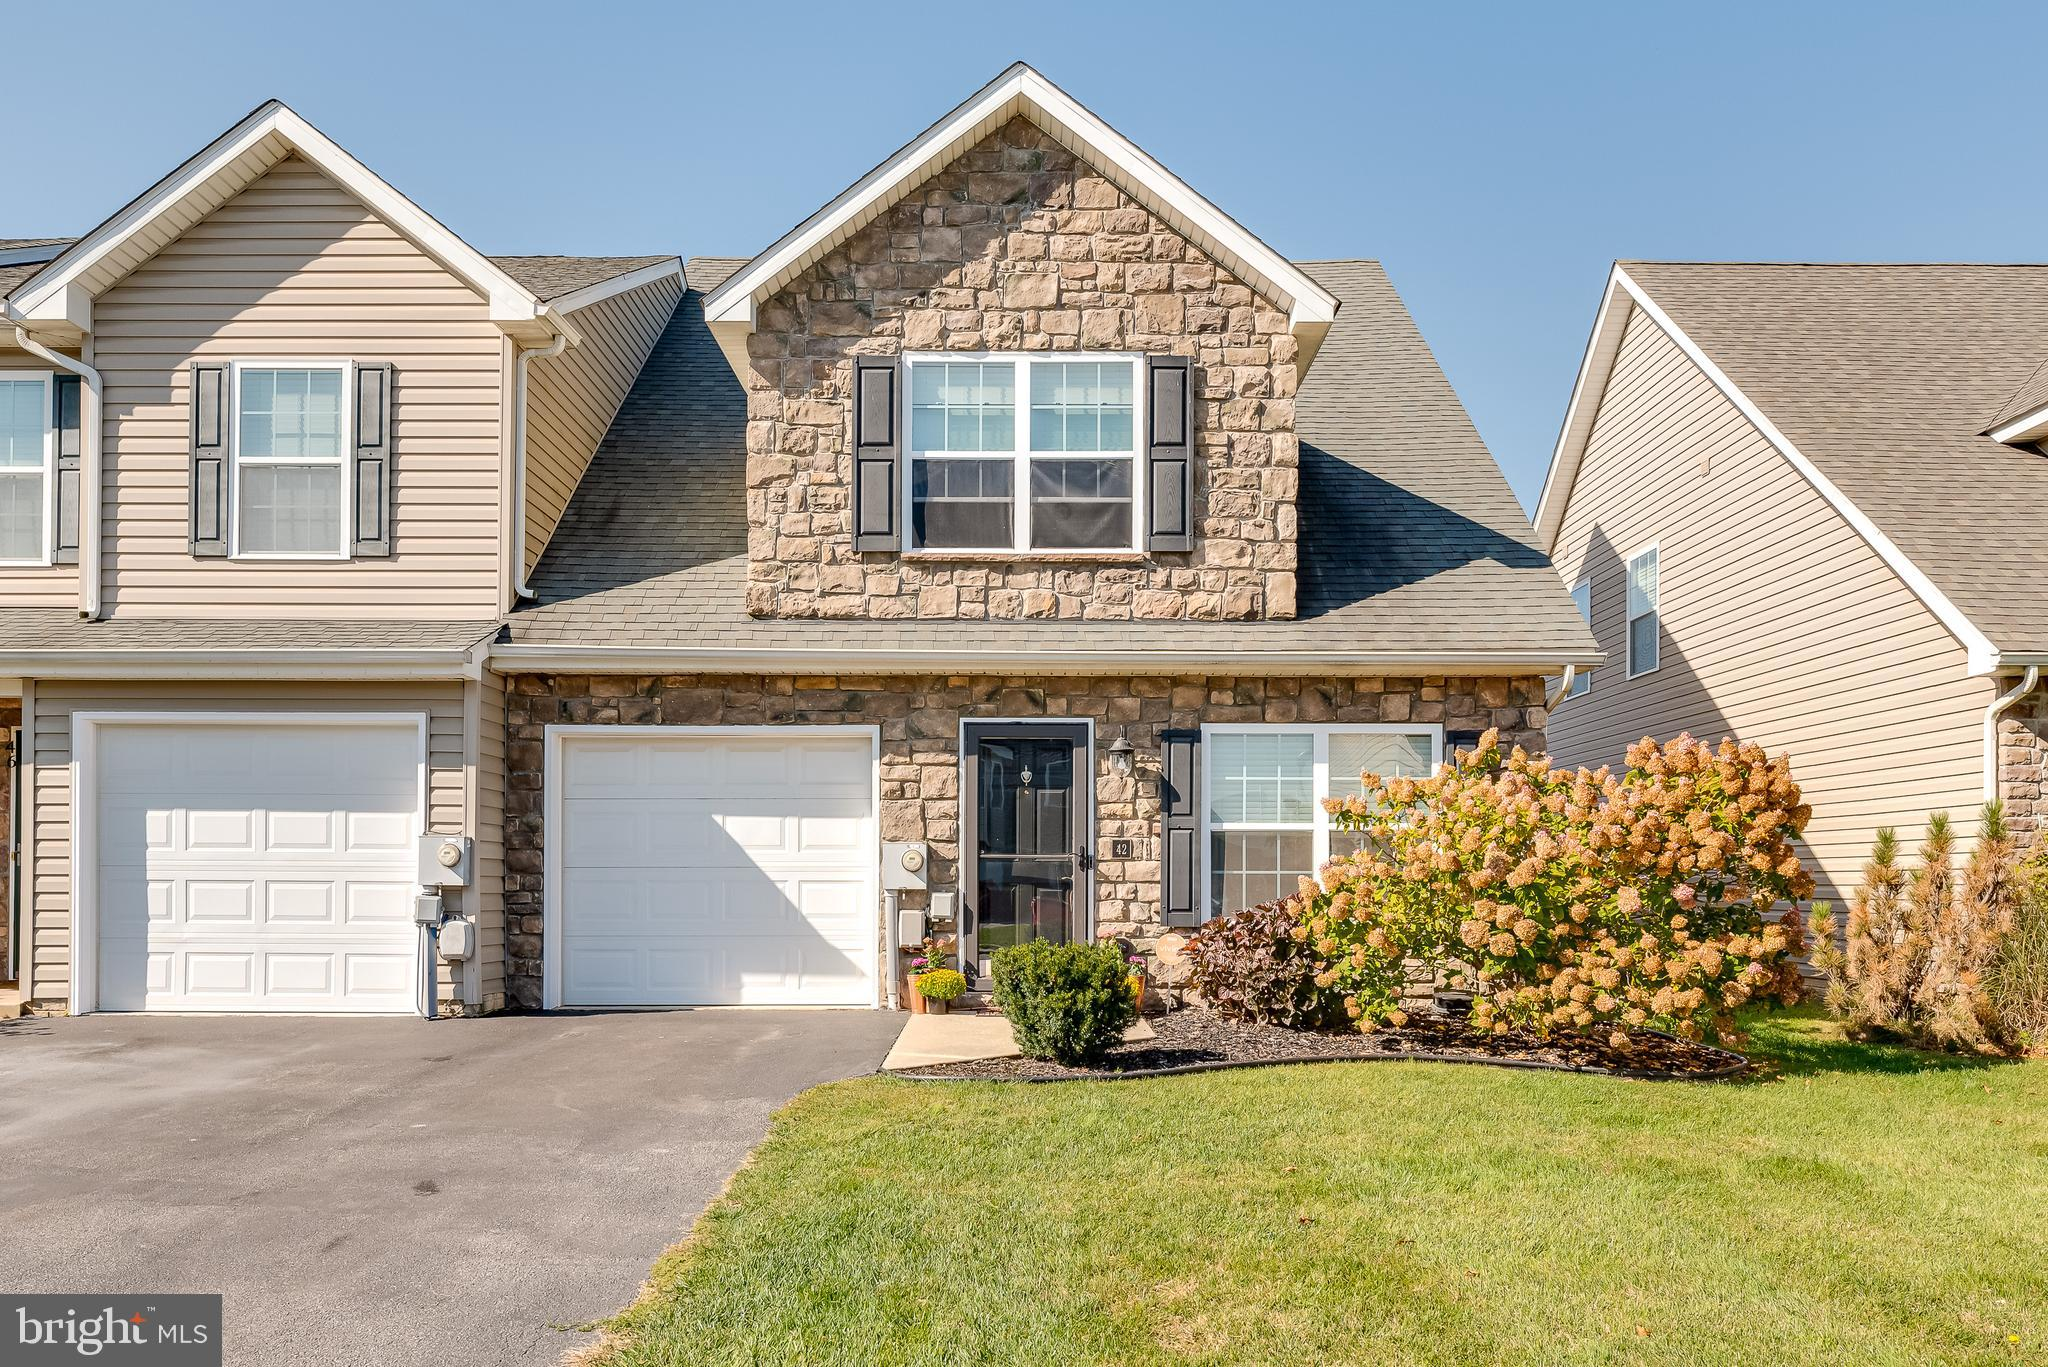 This 3 bedroom 3.5 bath townhome has been beautifully maintained. You have master suites on both the